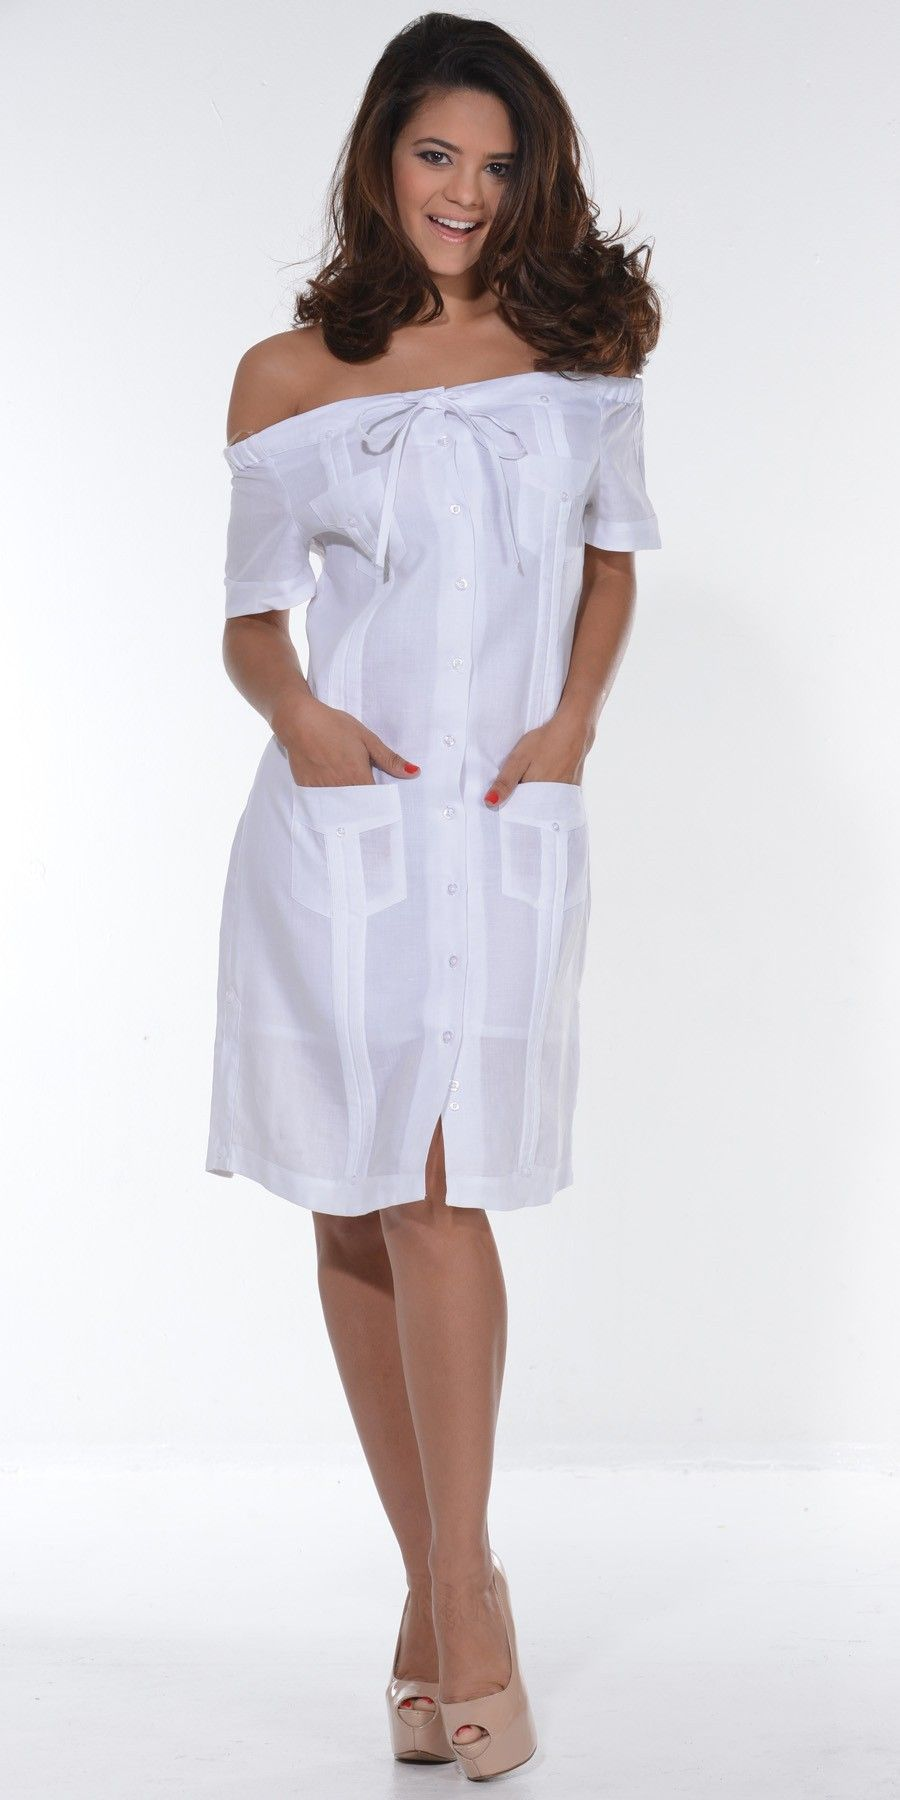 da16585a6a Guayabera Dress off the shoulder sleeve for ladies (LDC3100-3380) - Linen  guayabera Dress off the shoulder. Dry clean for best result.